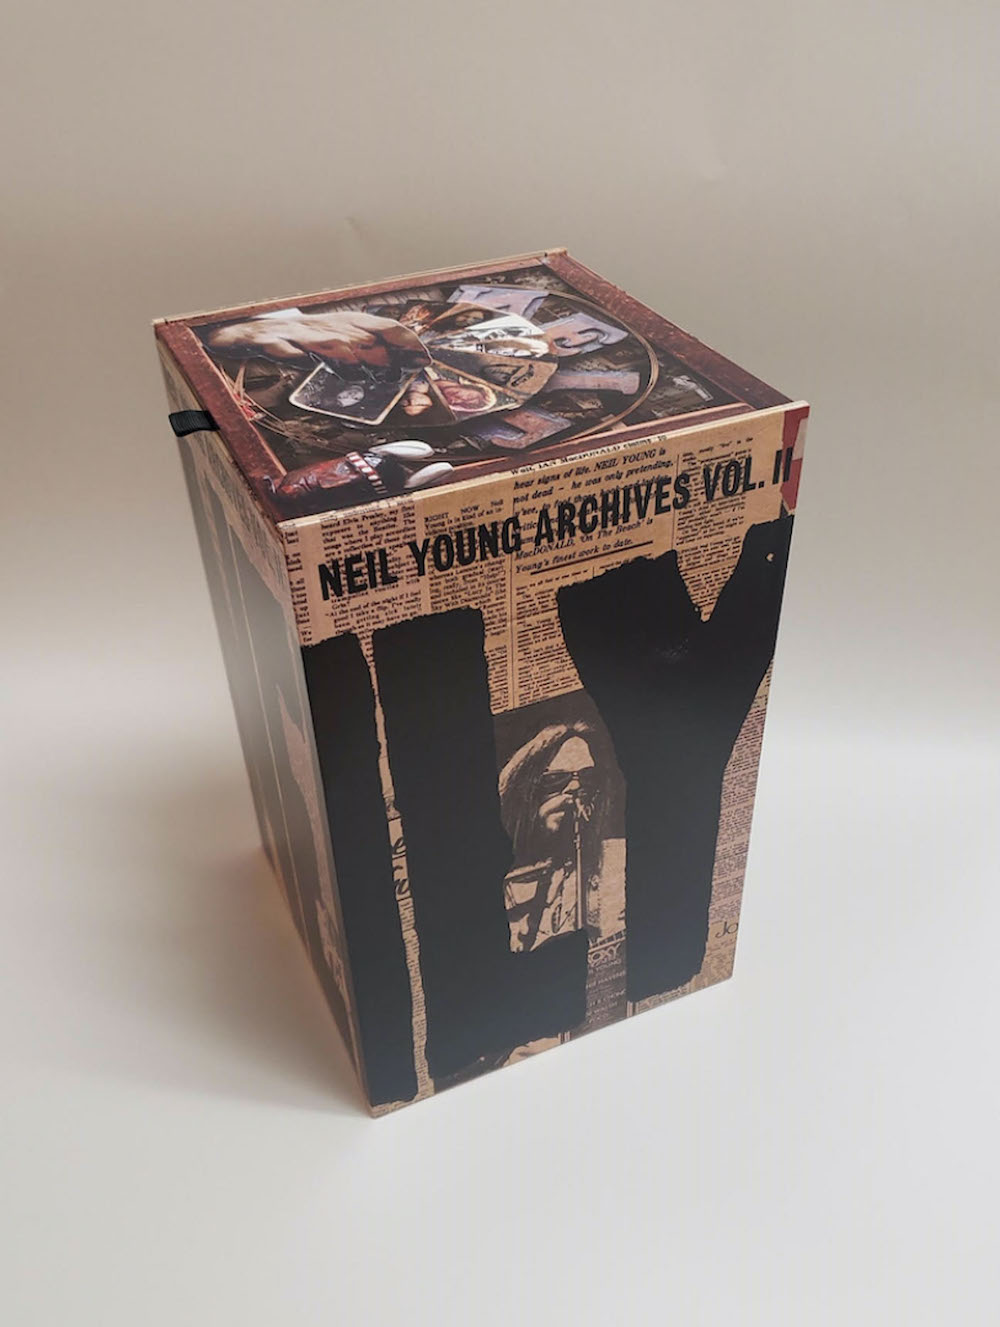 neil young archives vol 2 Neil Young Details Archives Vol. 2 Box Set